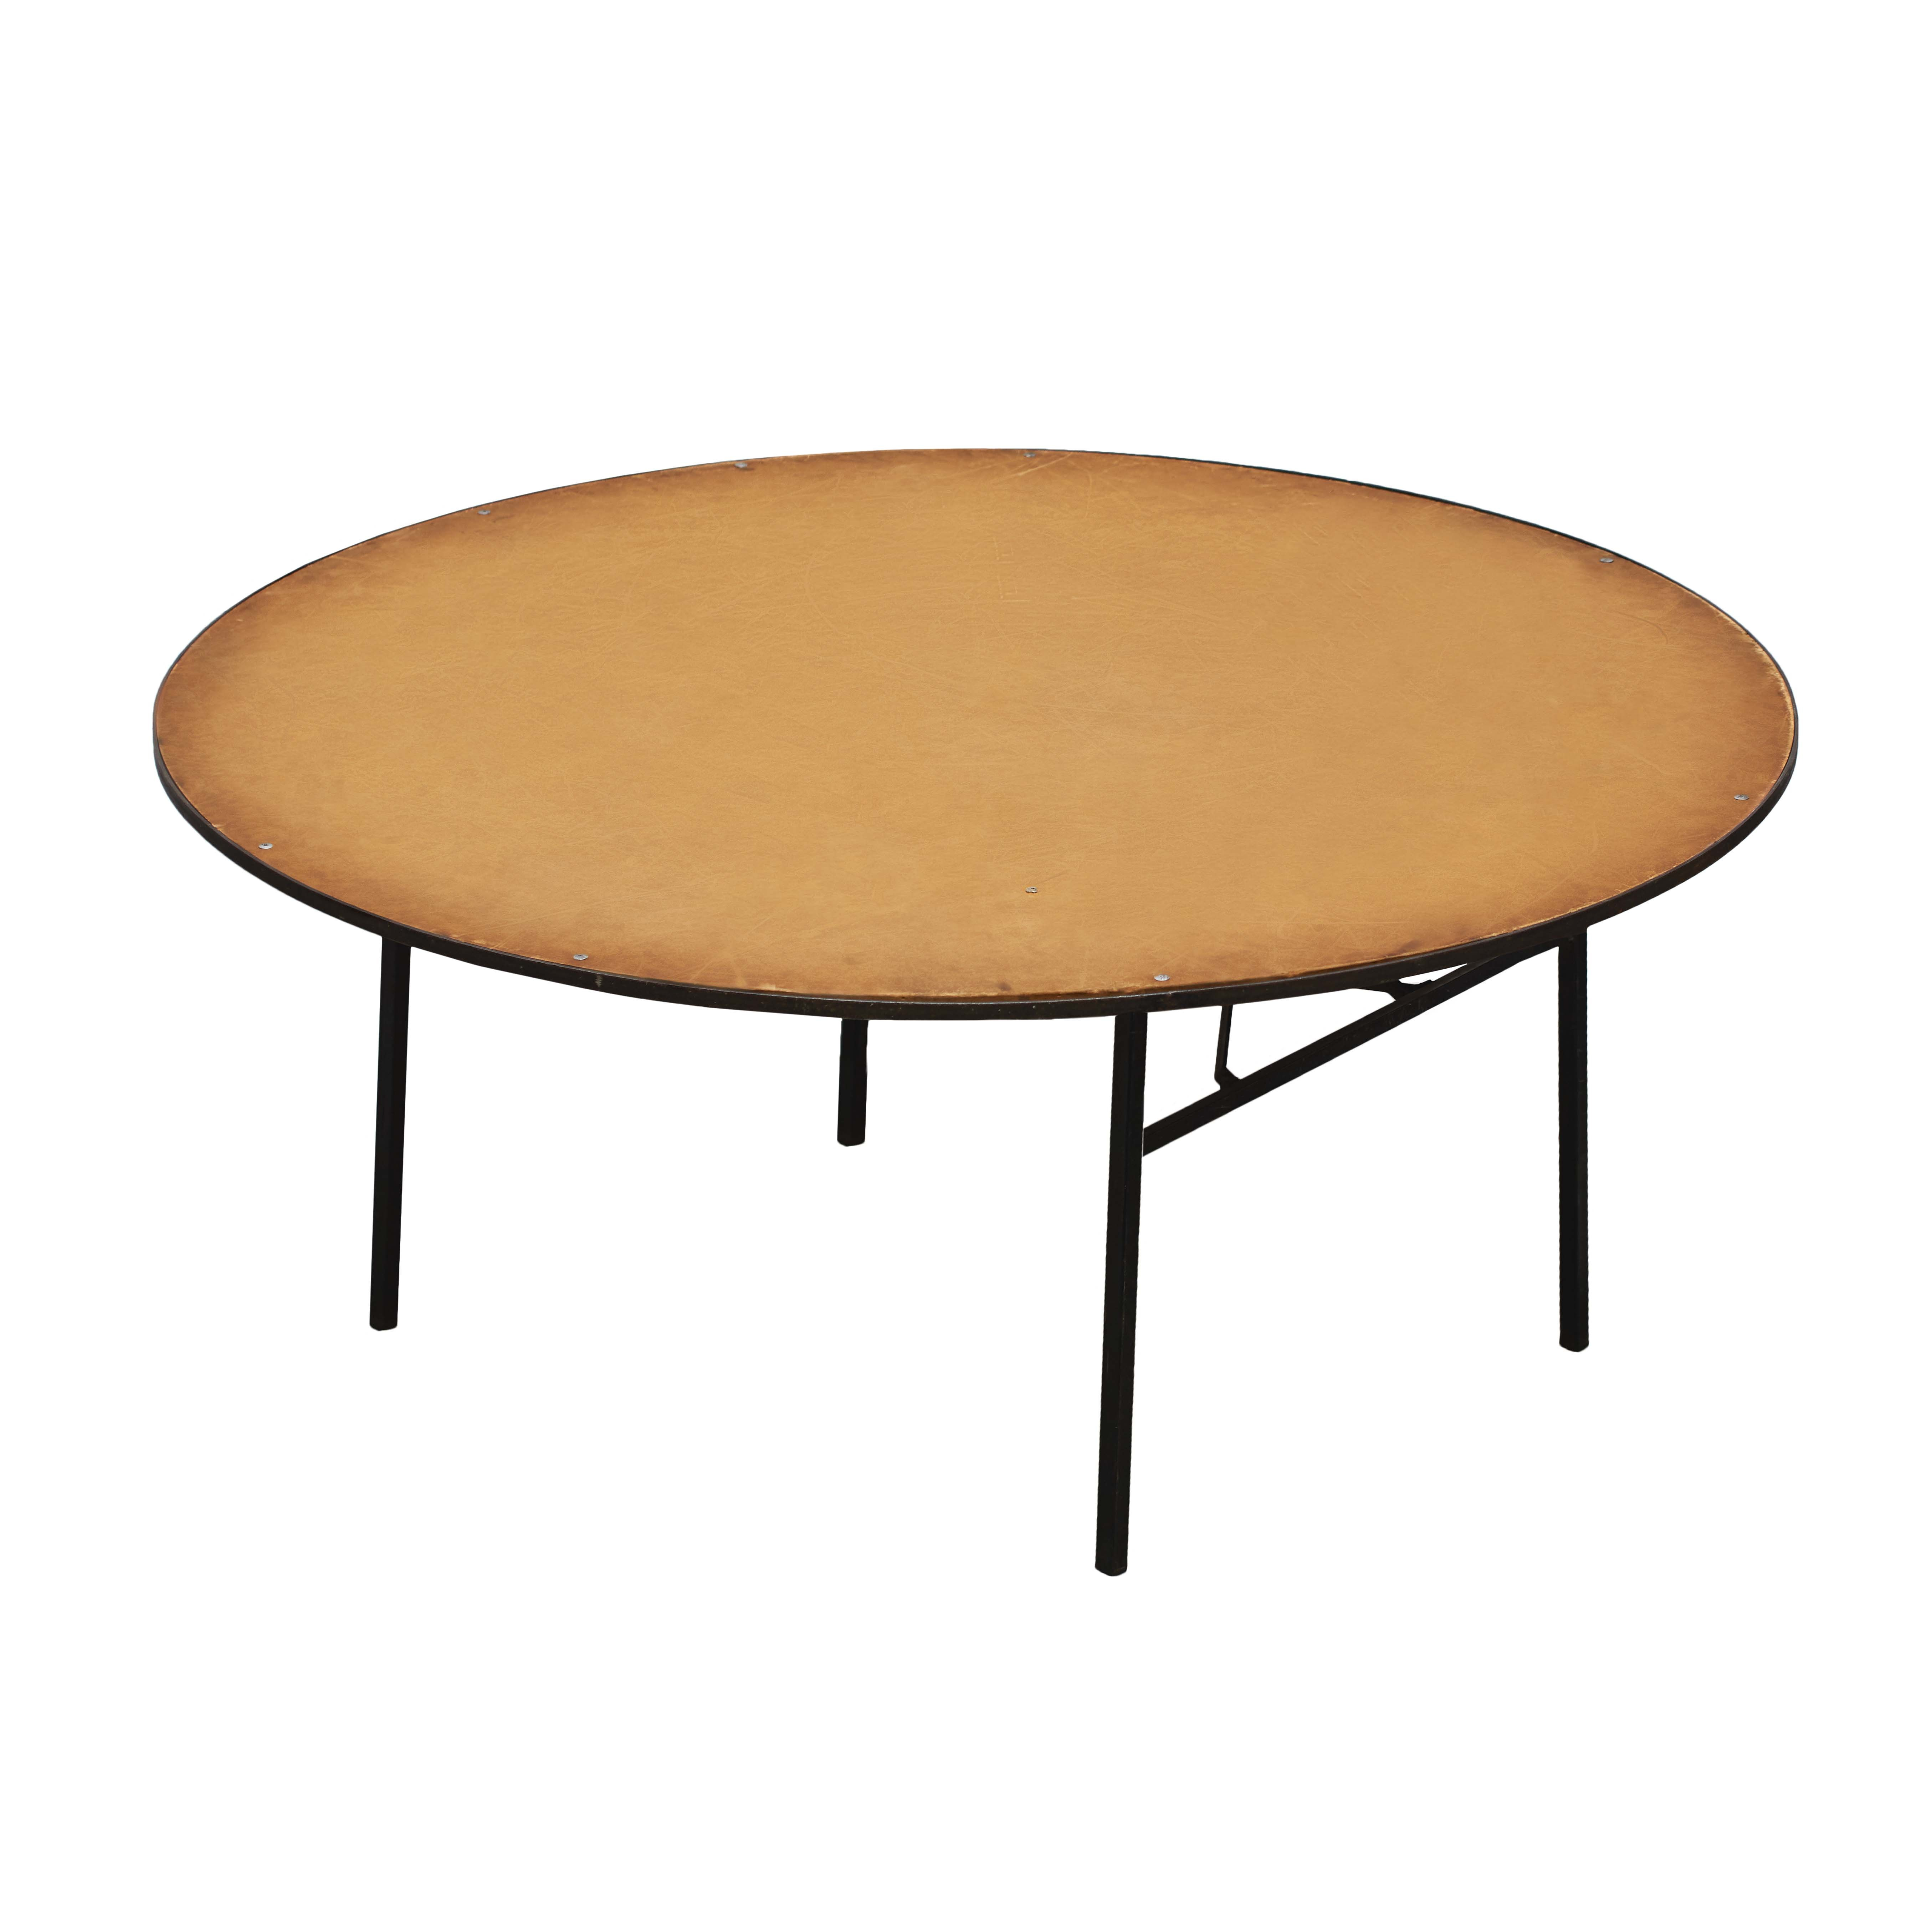 10 Round Table.Round Table 10 Seater For Hire